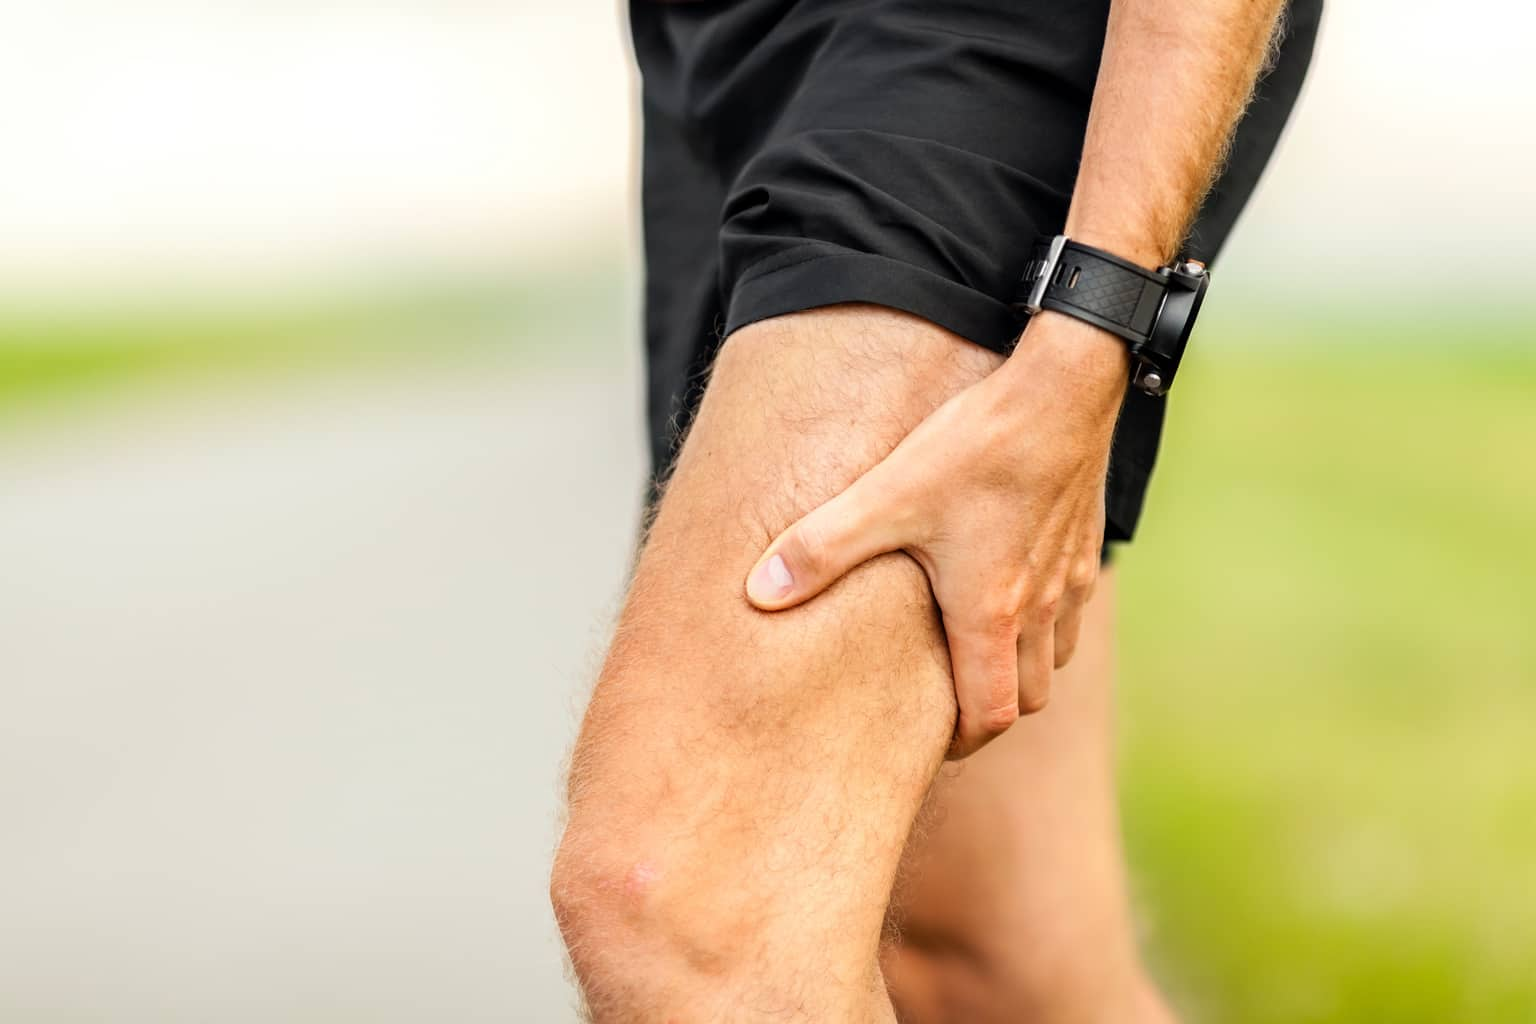 Low taurine causes muscle injury